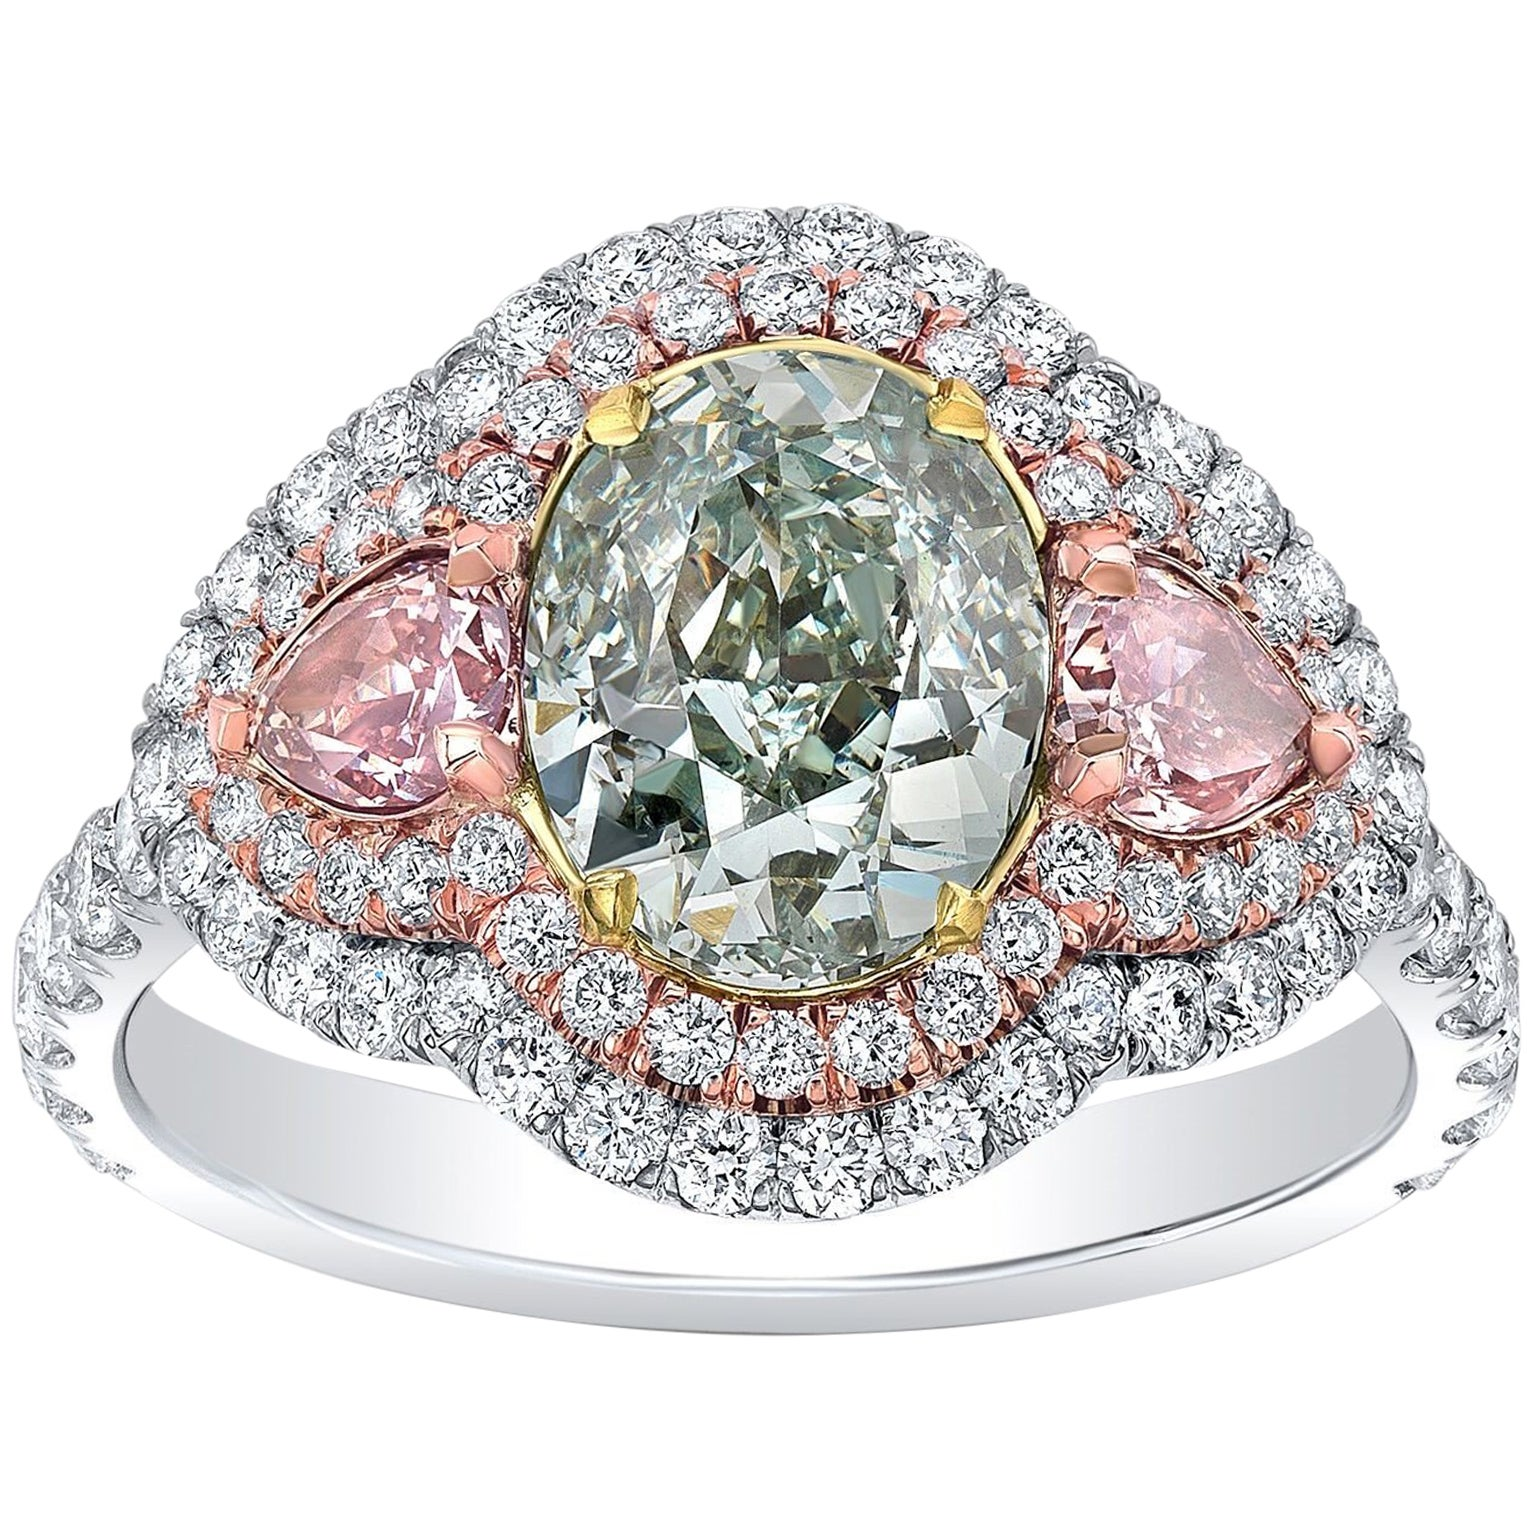 Blue Green Diamond Ring Oval 2.00 Carats GIA Certified